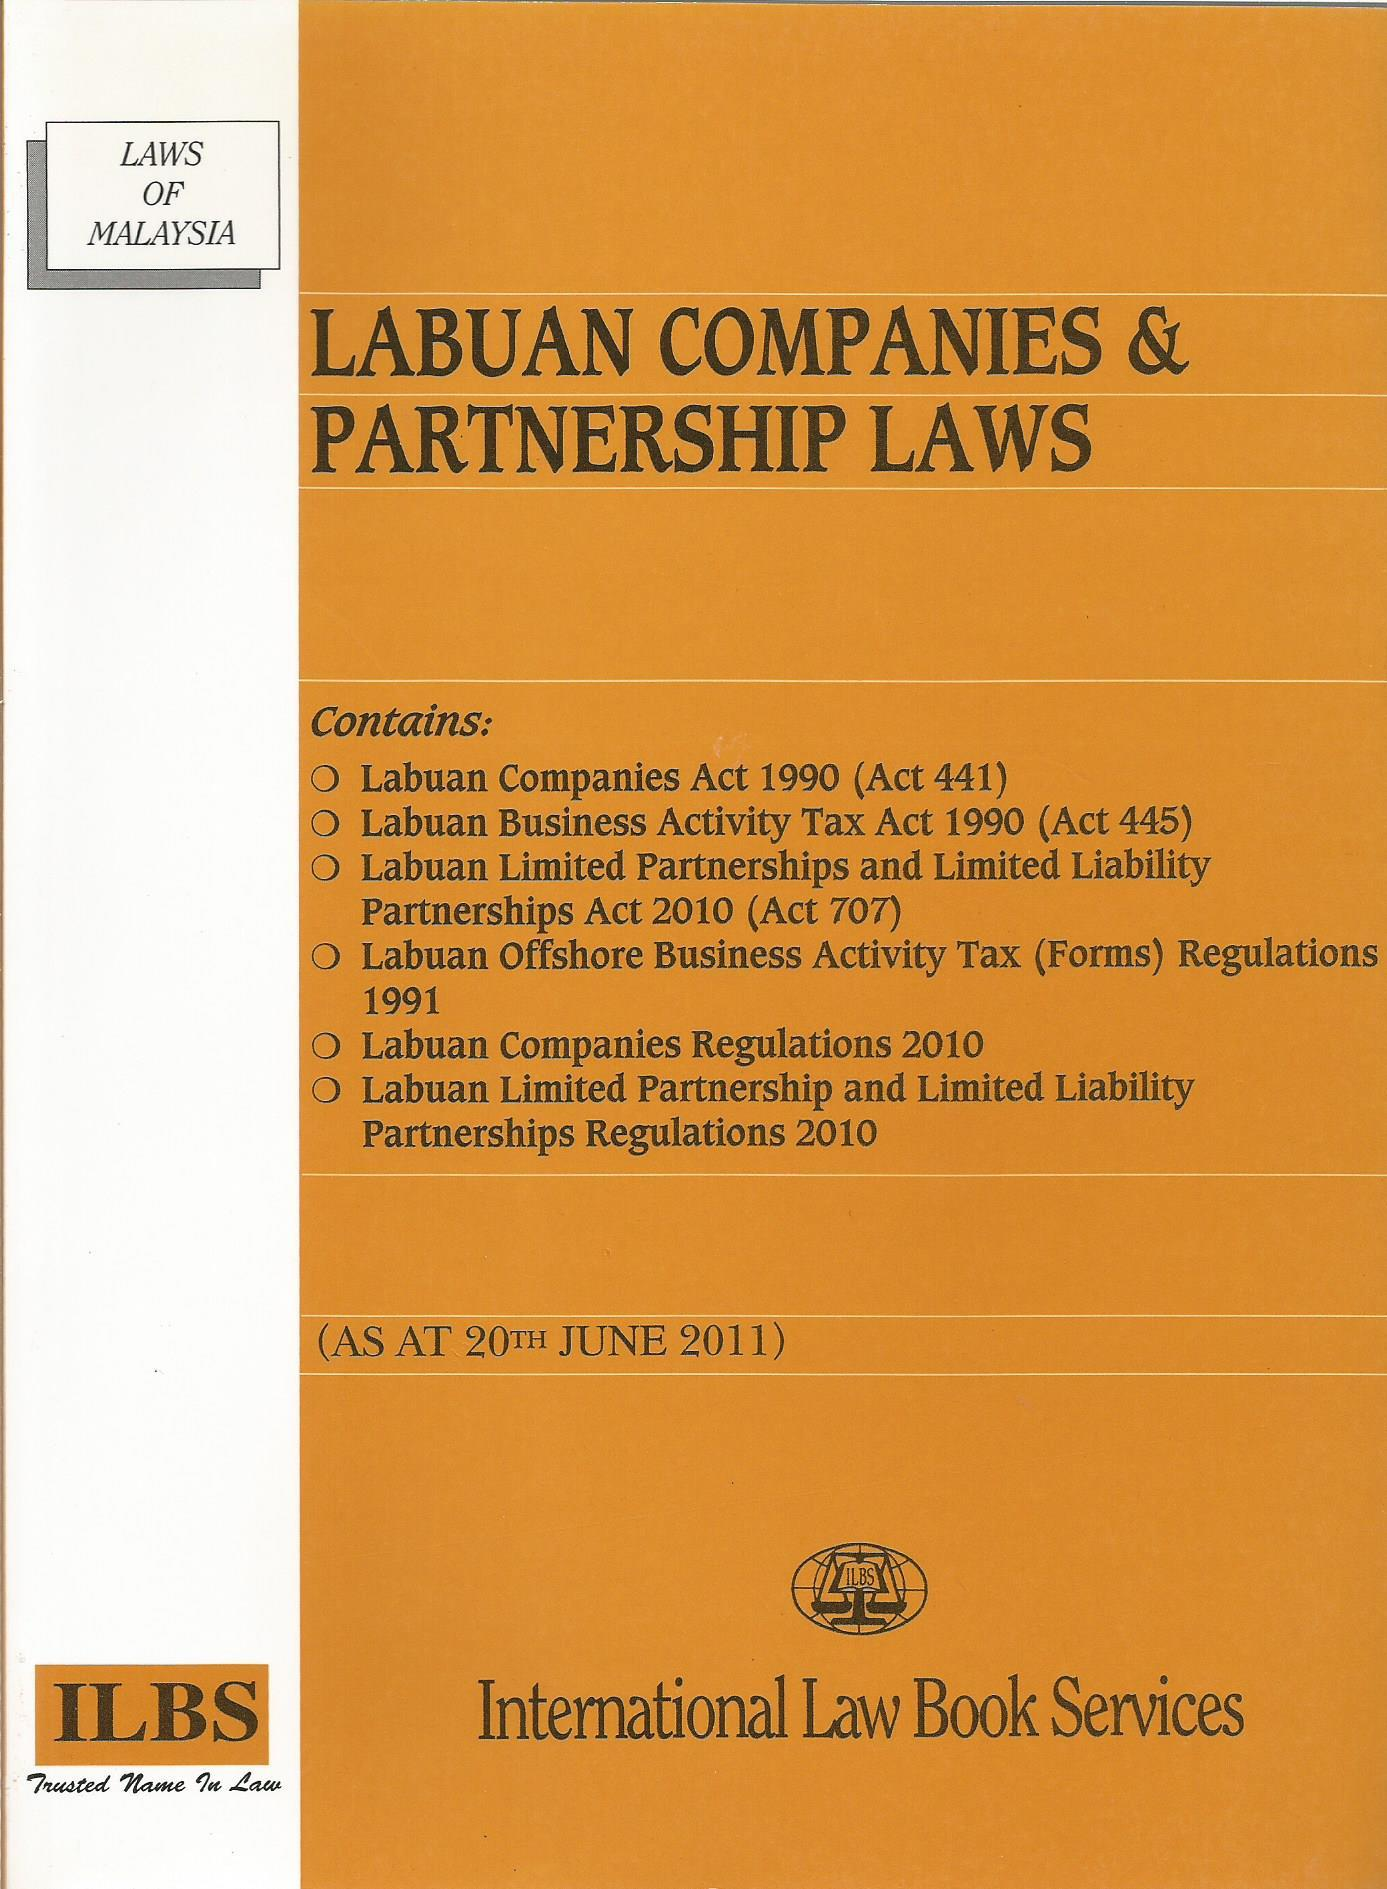 labuan companies and partnership act rm42.5 0.60001.jpg